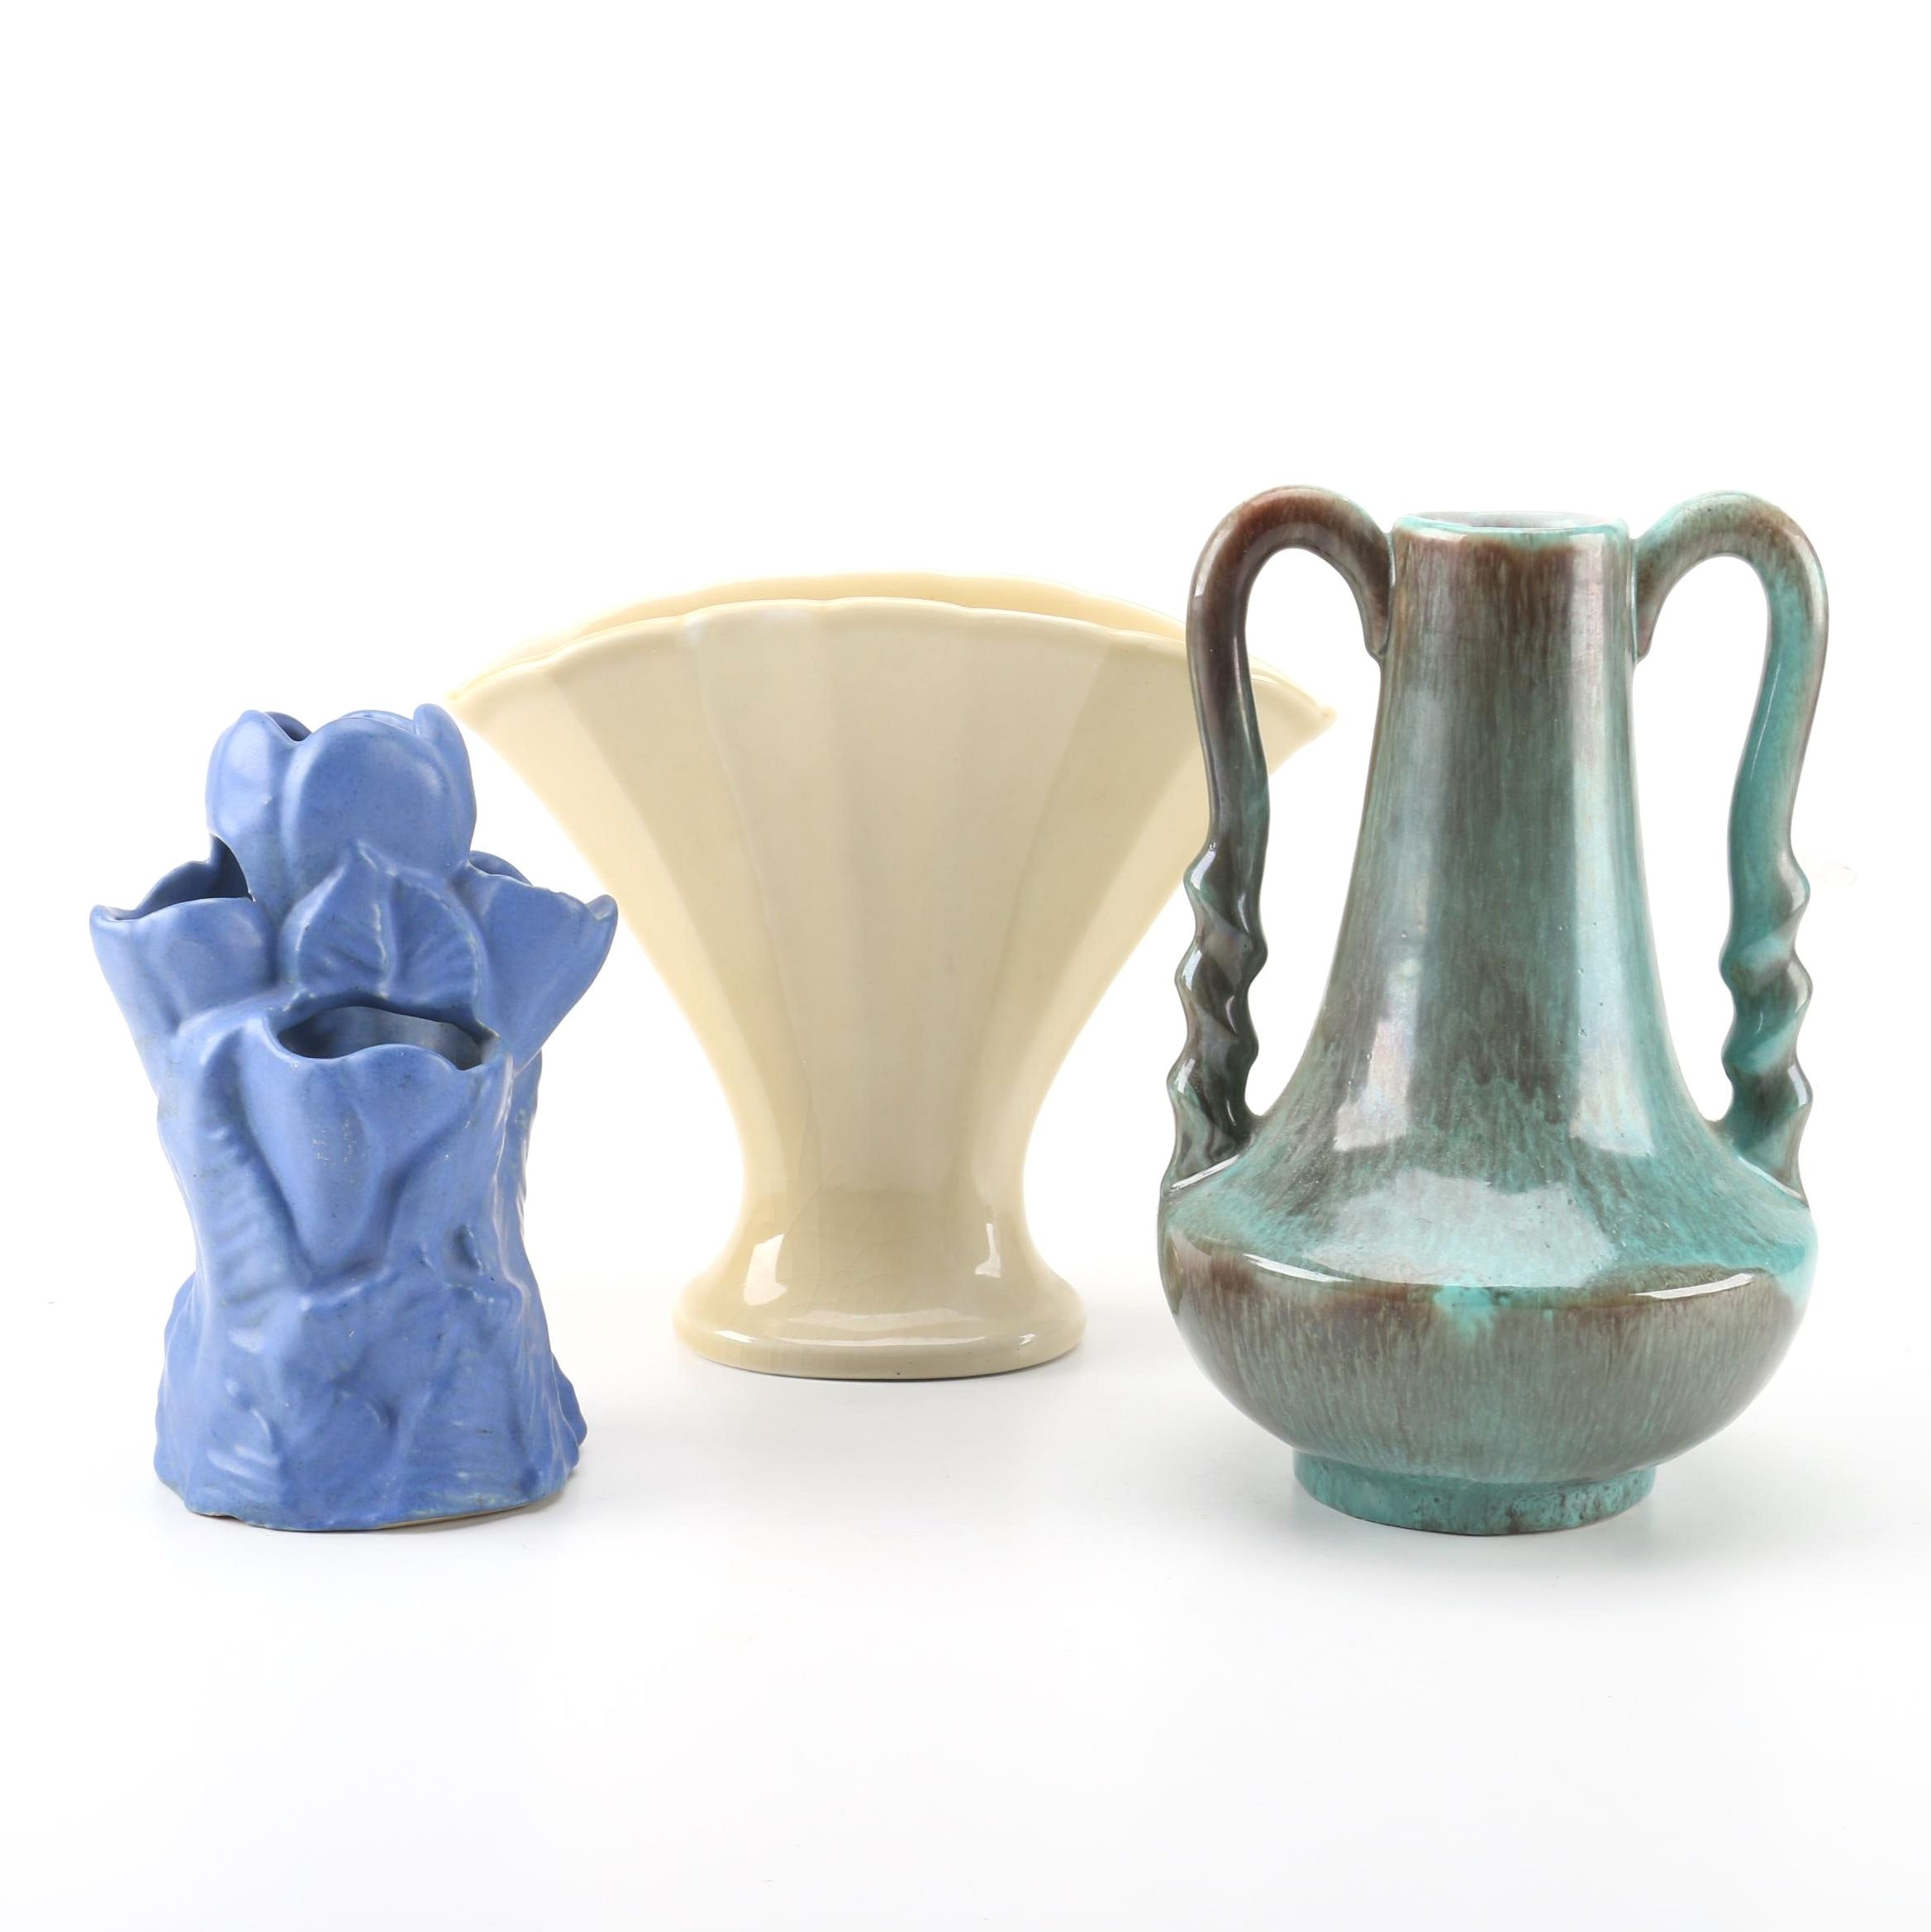 Pottery Vases Featuring Rookwood, Gonder and Niloak